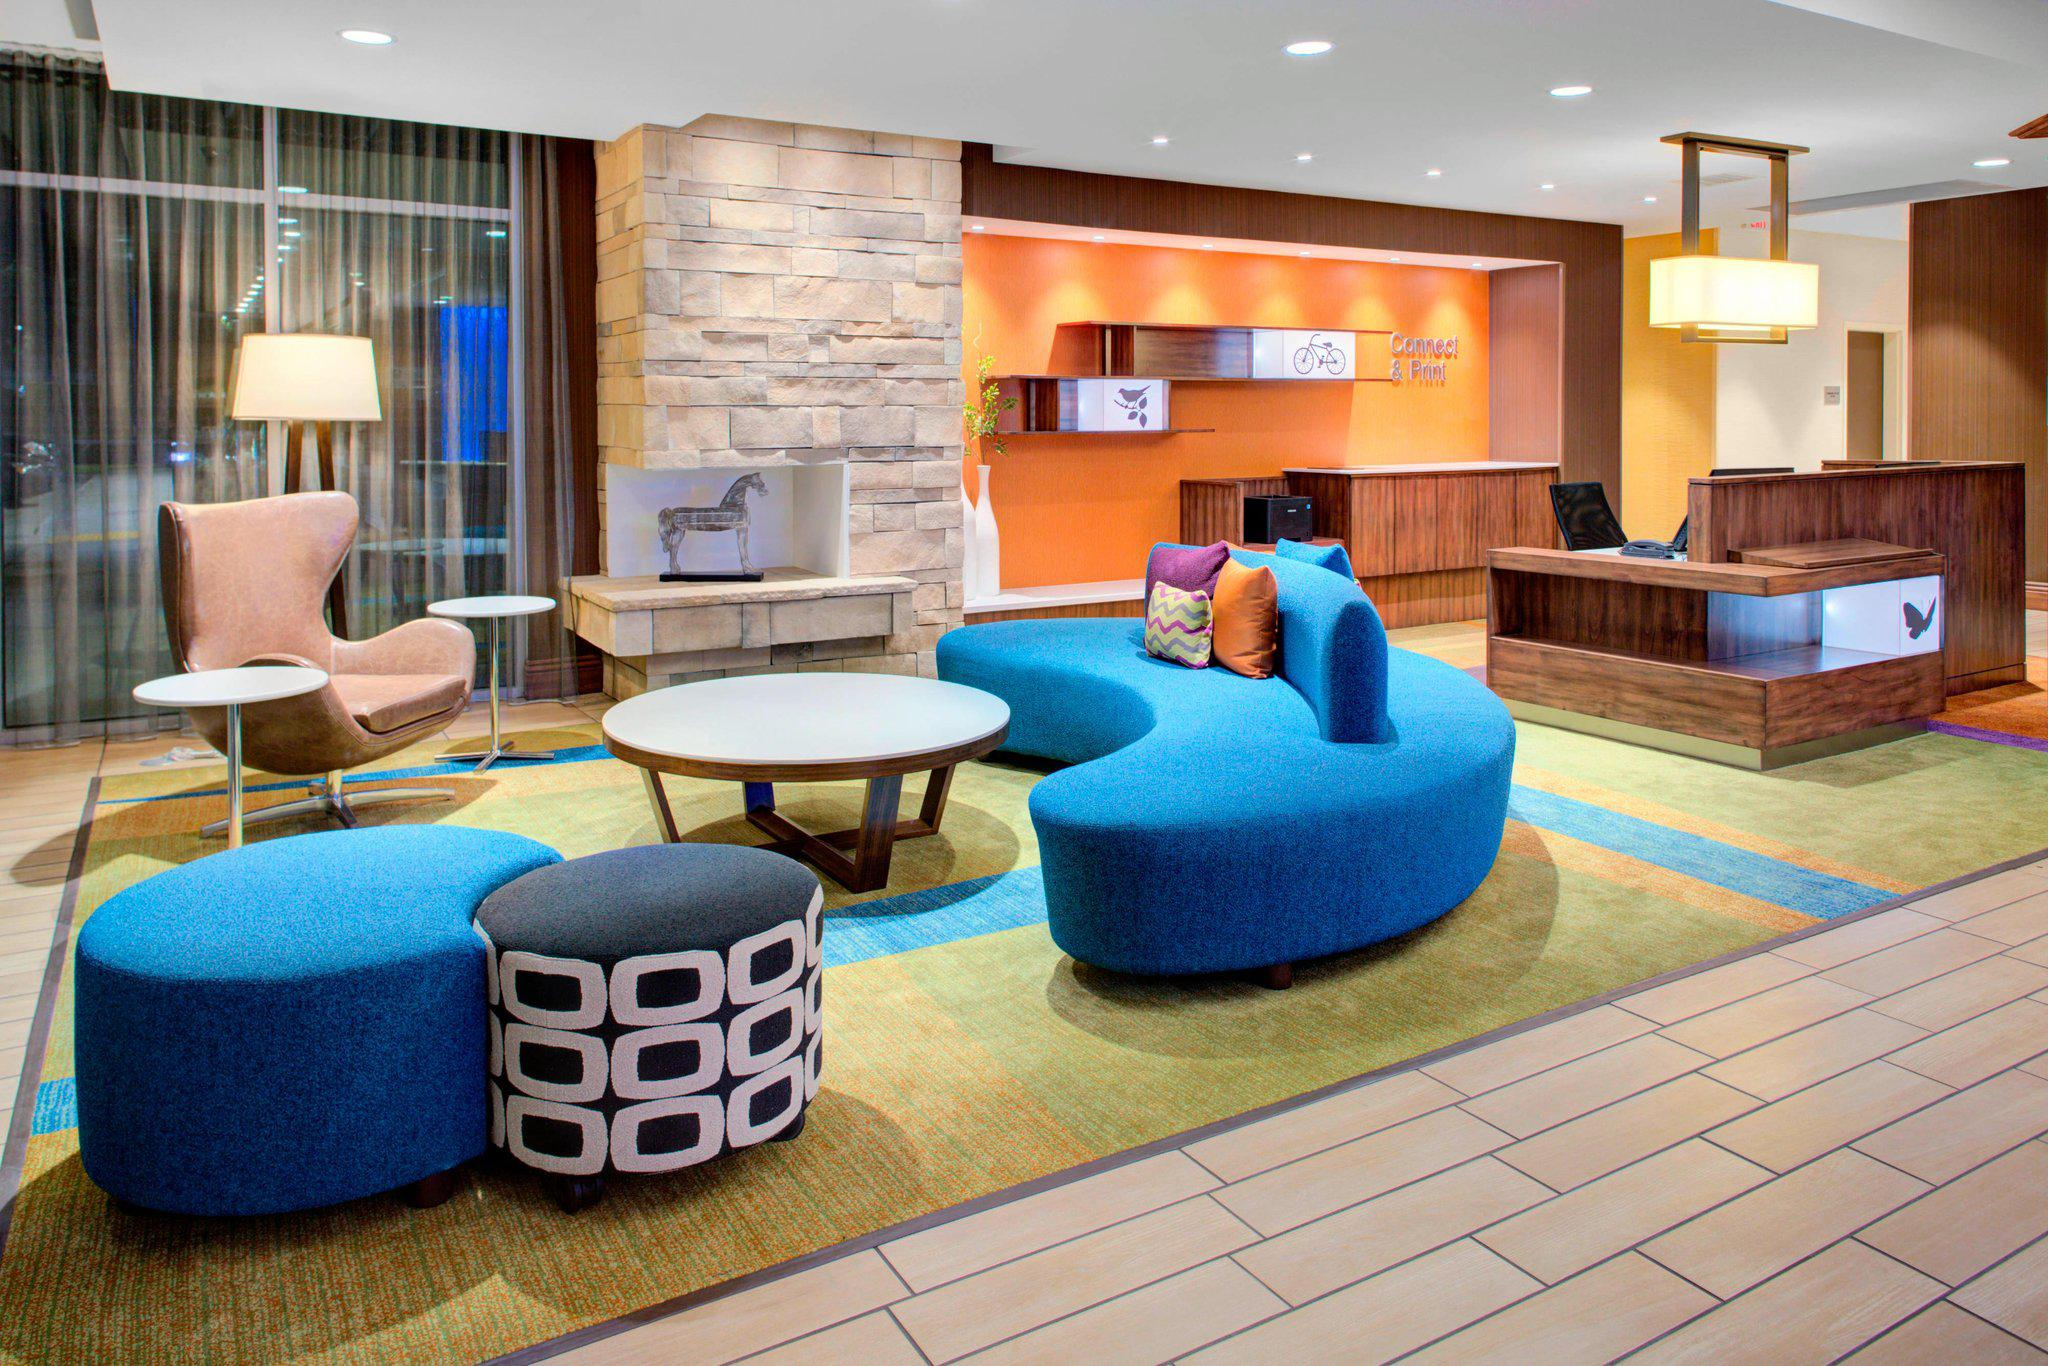 Fairfield Inn & Suites by Marriott Bakersfield North/Airport